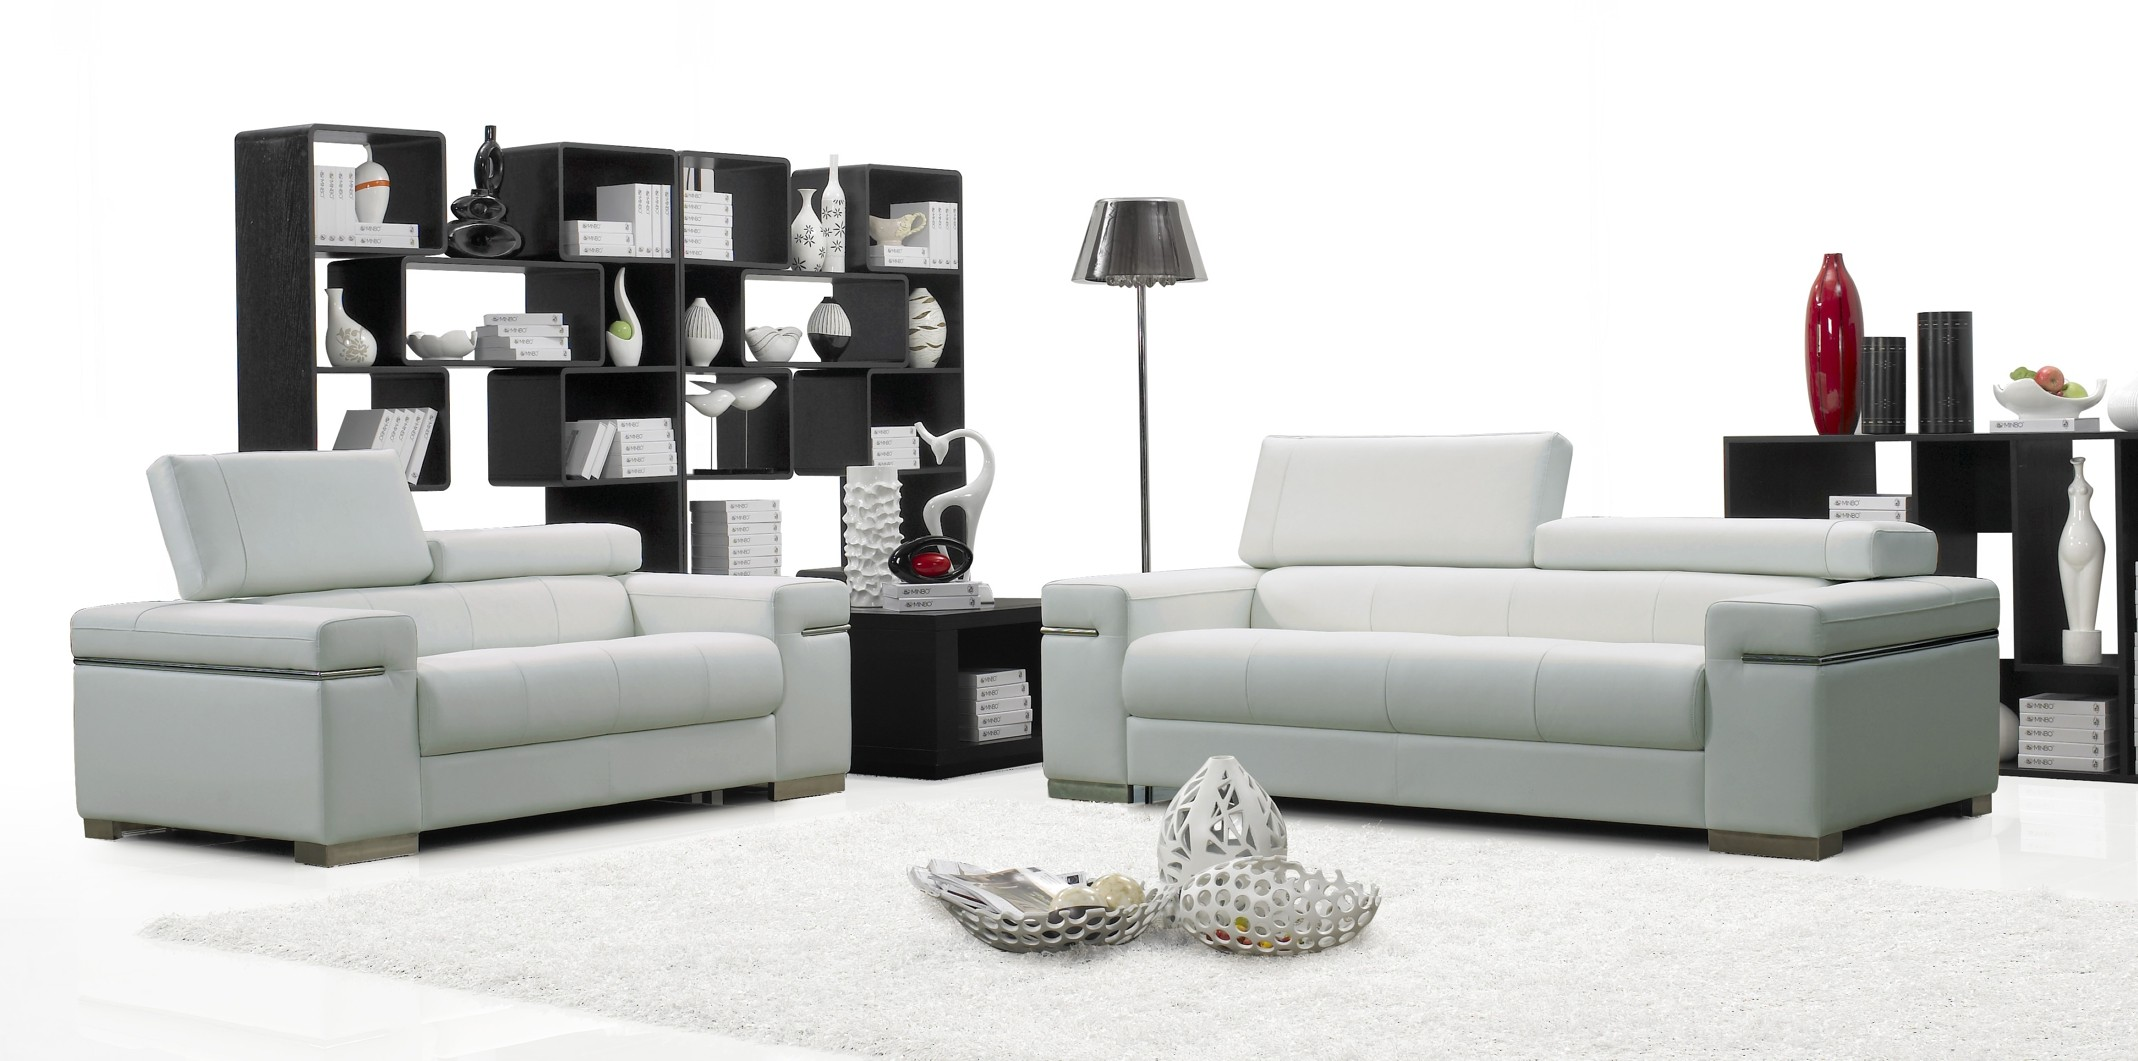 Modern sofa sets white modern sofa set vg 74 leather sofas for Living room furniture designs